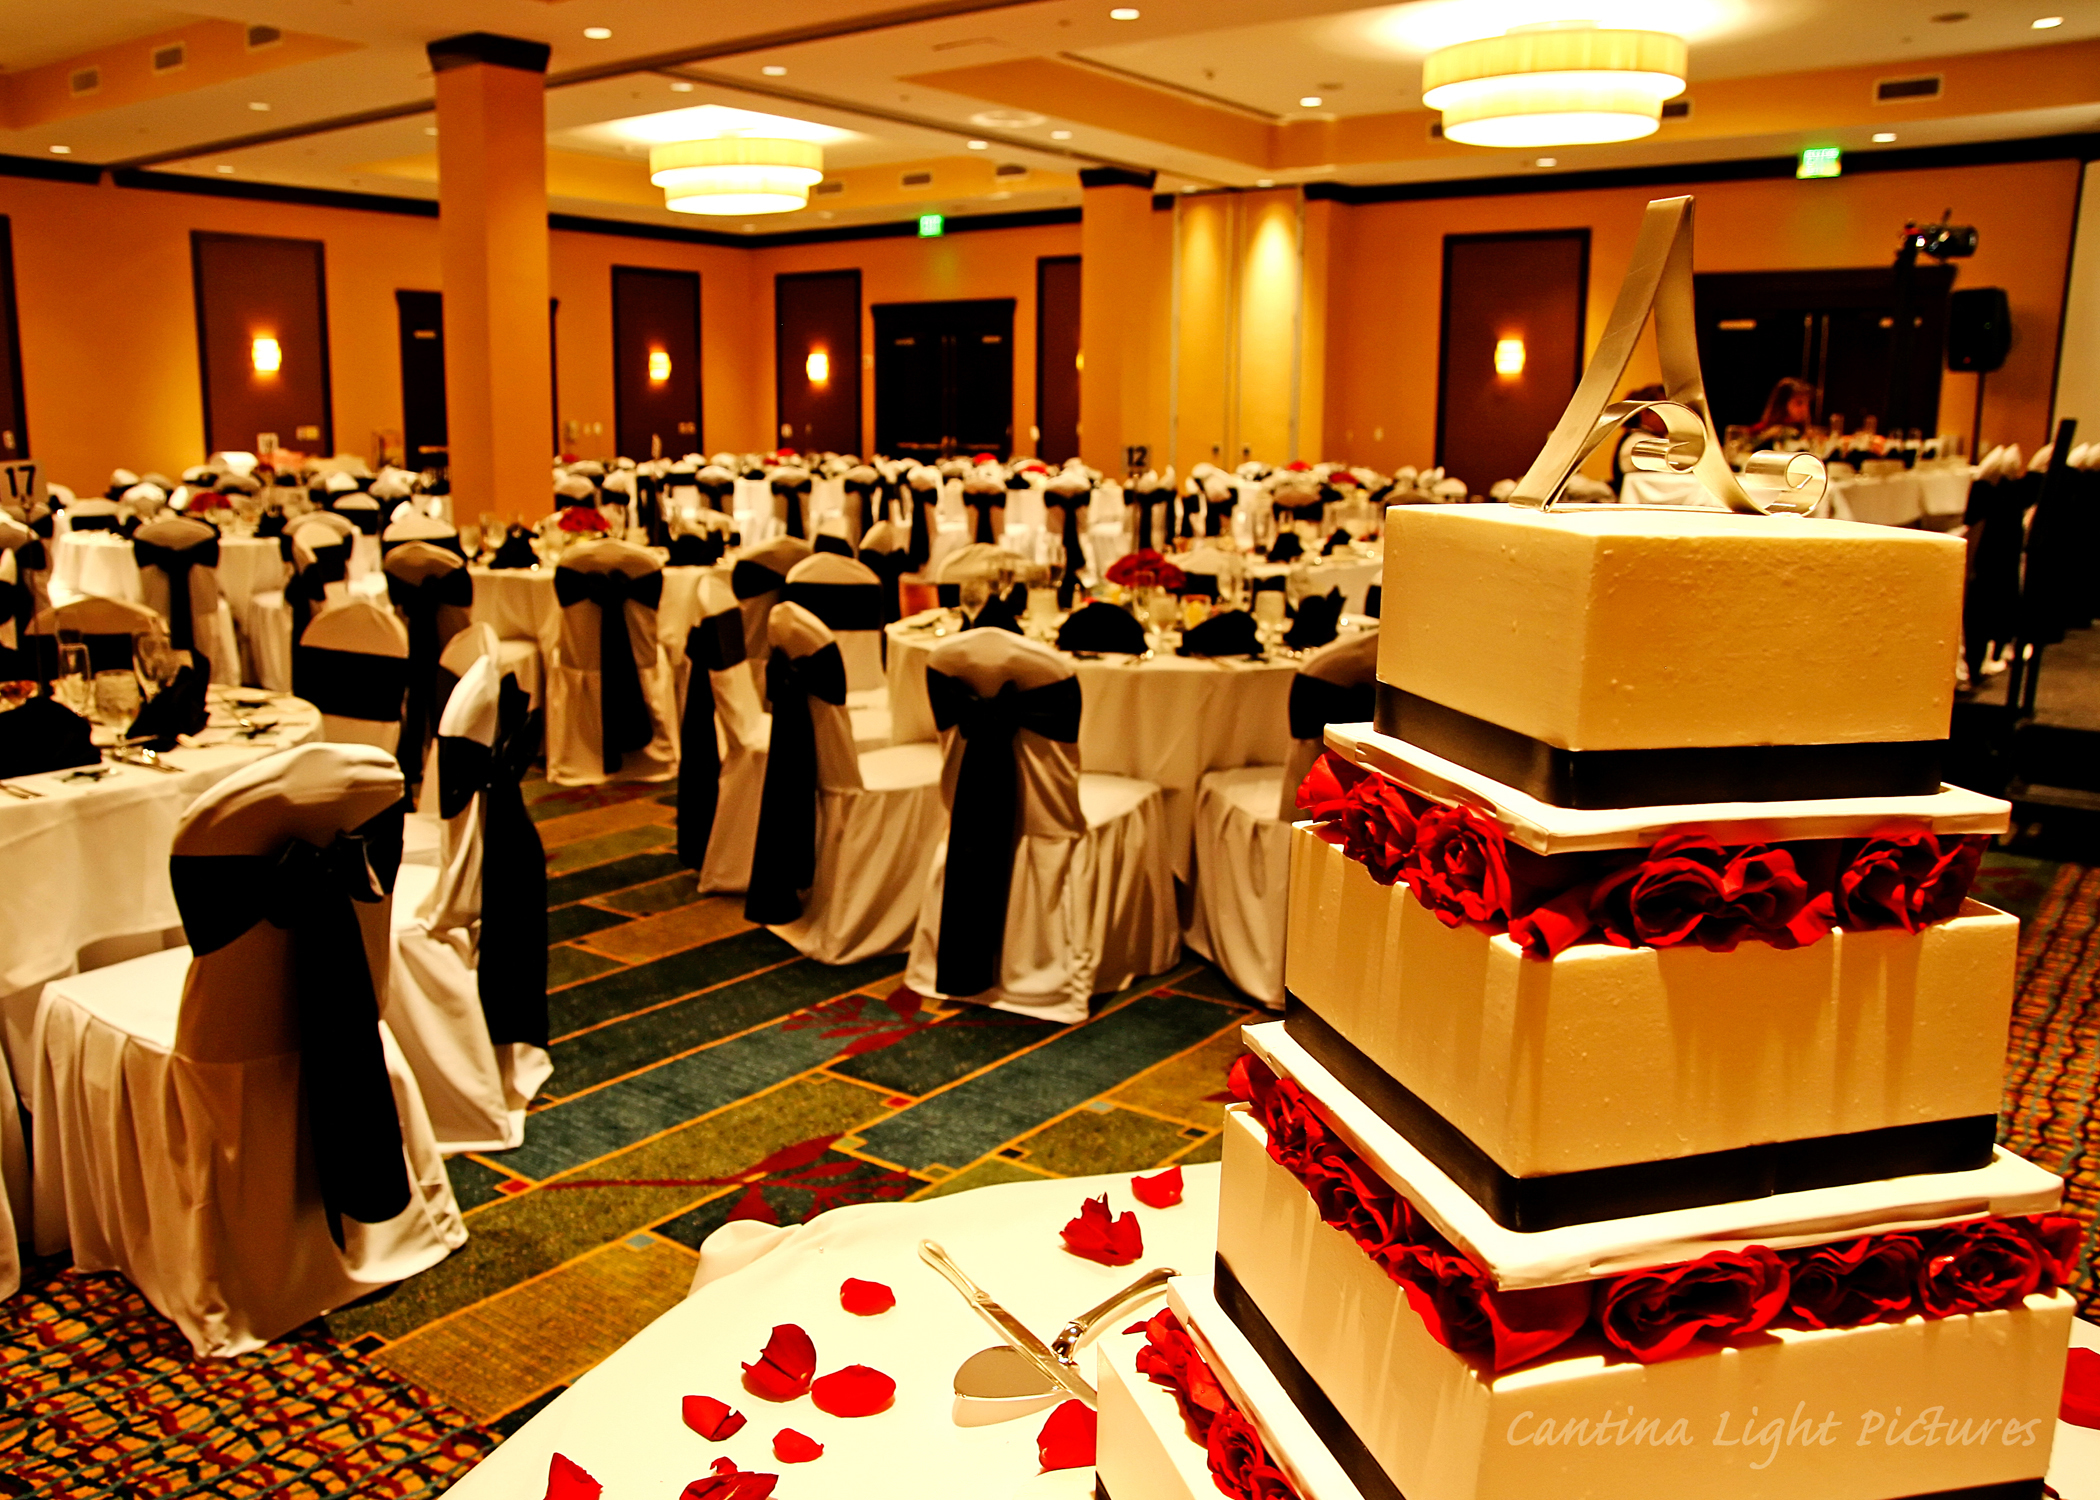 cake, red, black, Crystal, Chair, Ballroom, Covers, Cakes